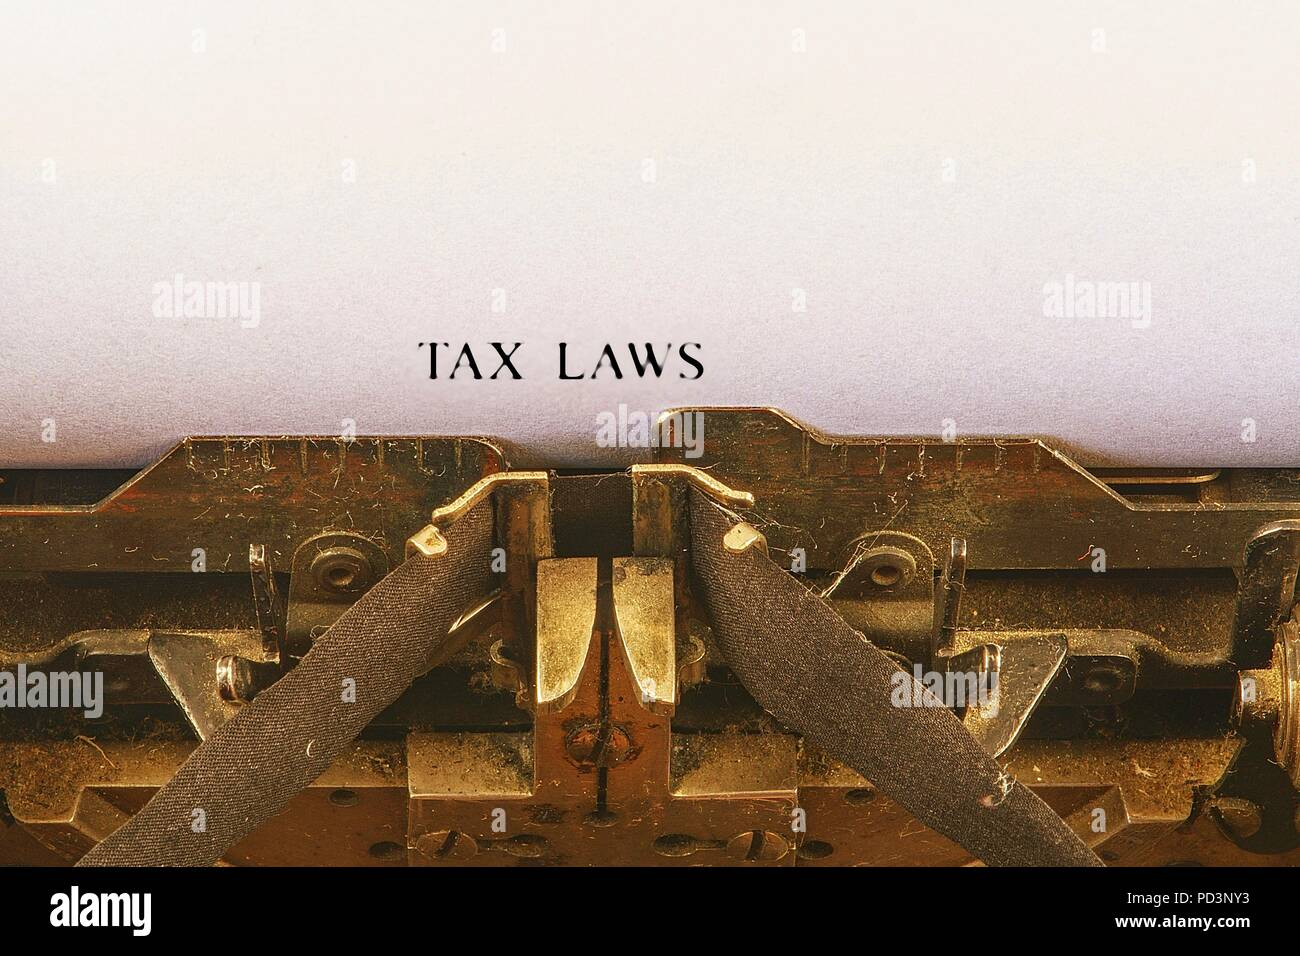 Closeup on vintage typewriter. Front focus on letters making TAX LAWS  text. Business concept image with retro office tool - Stock Image